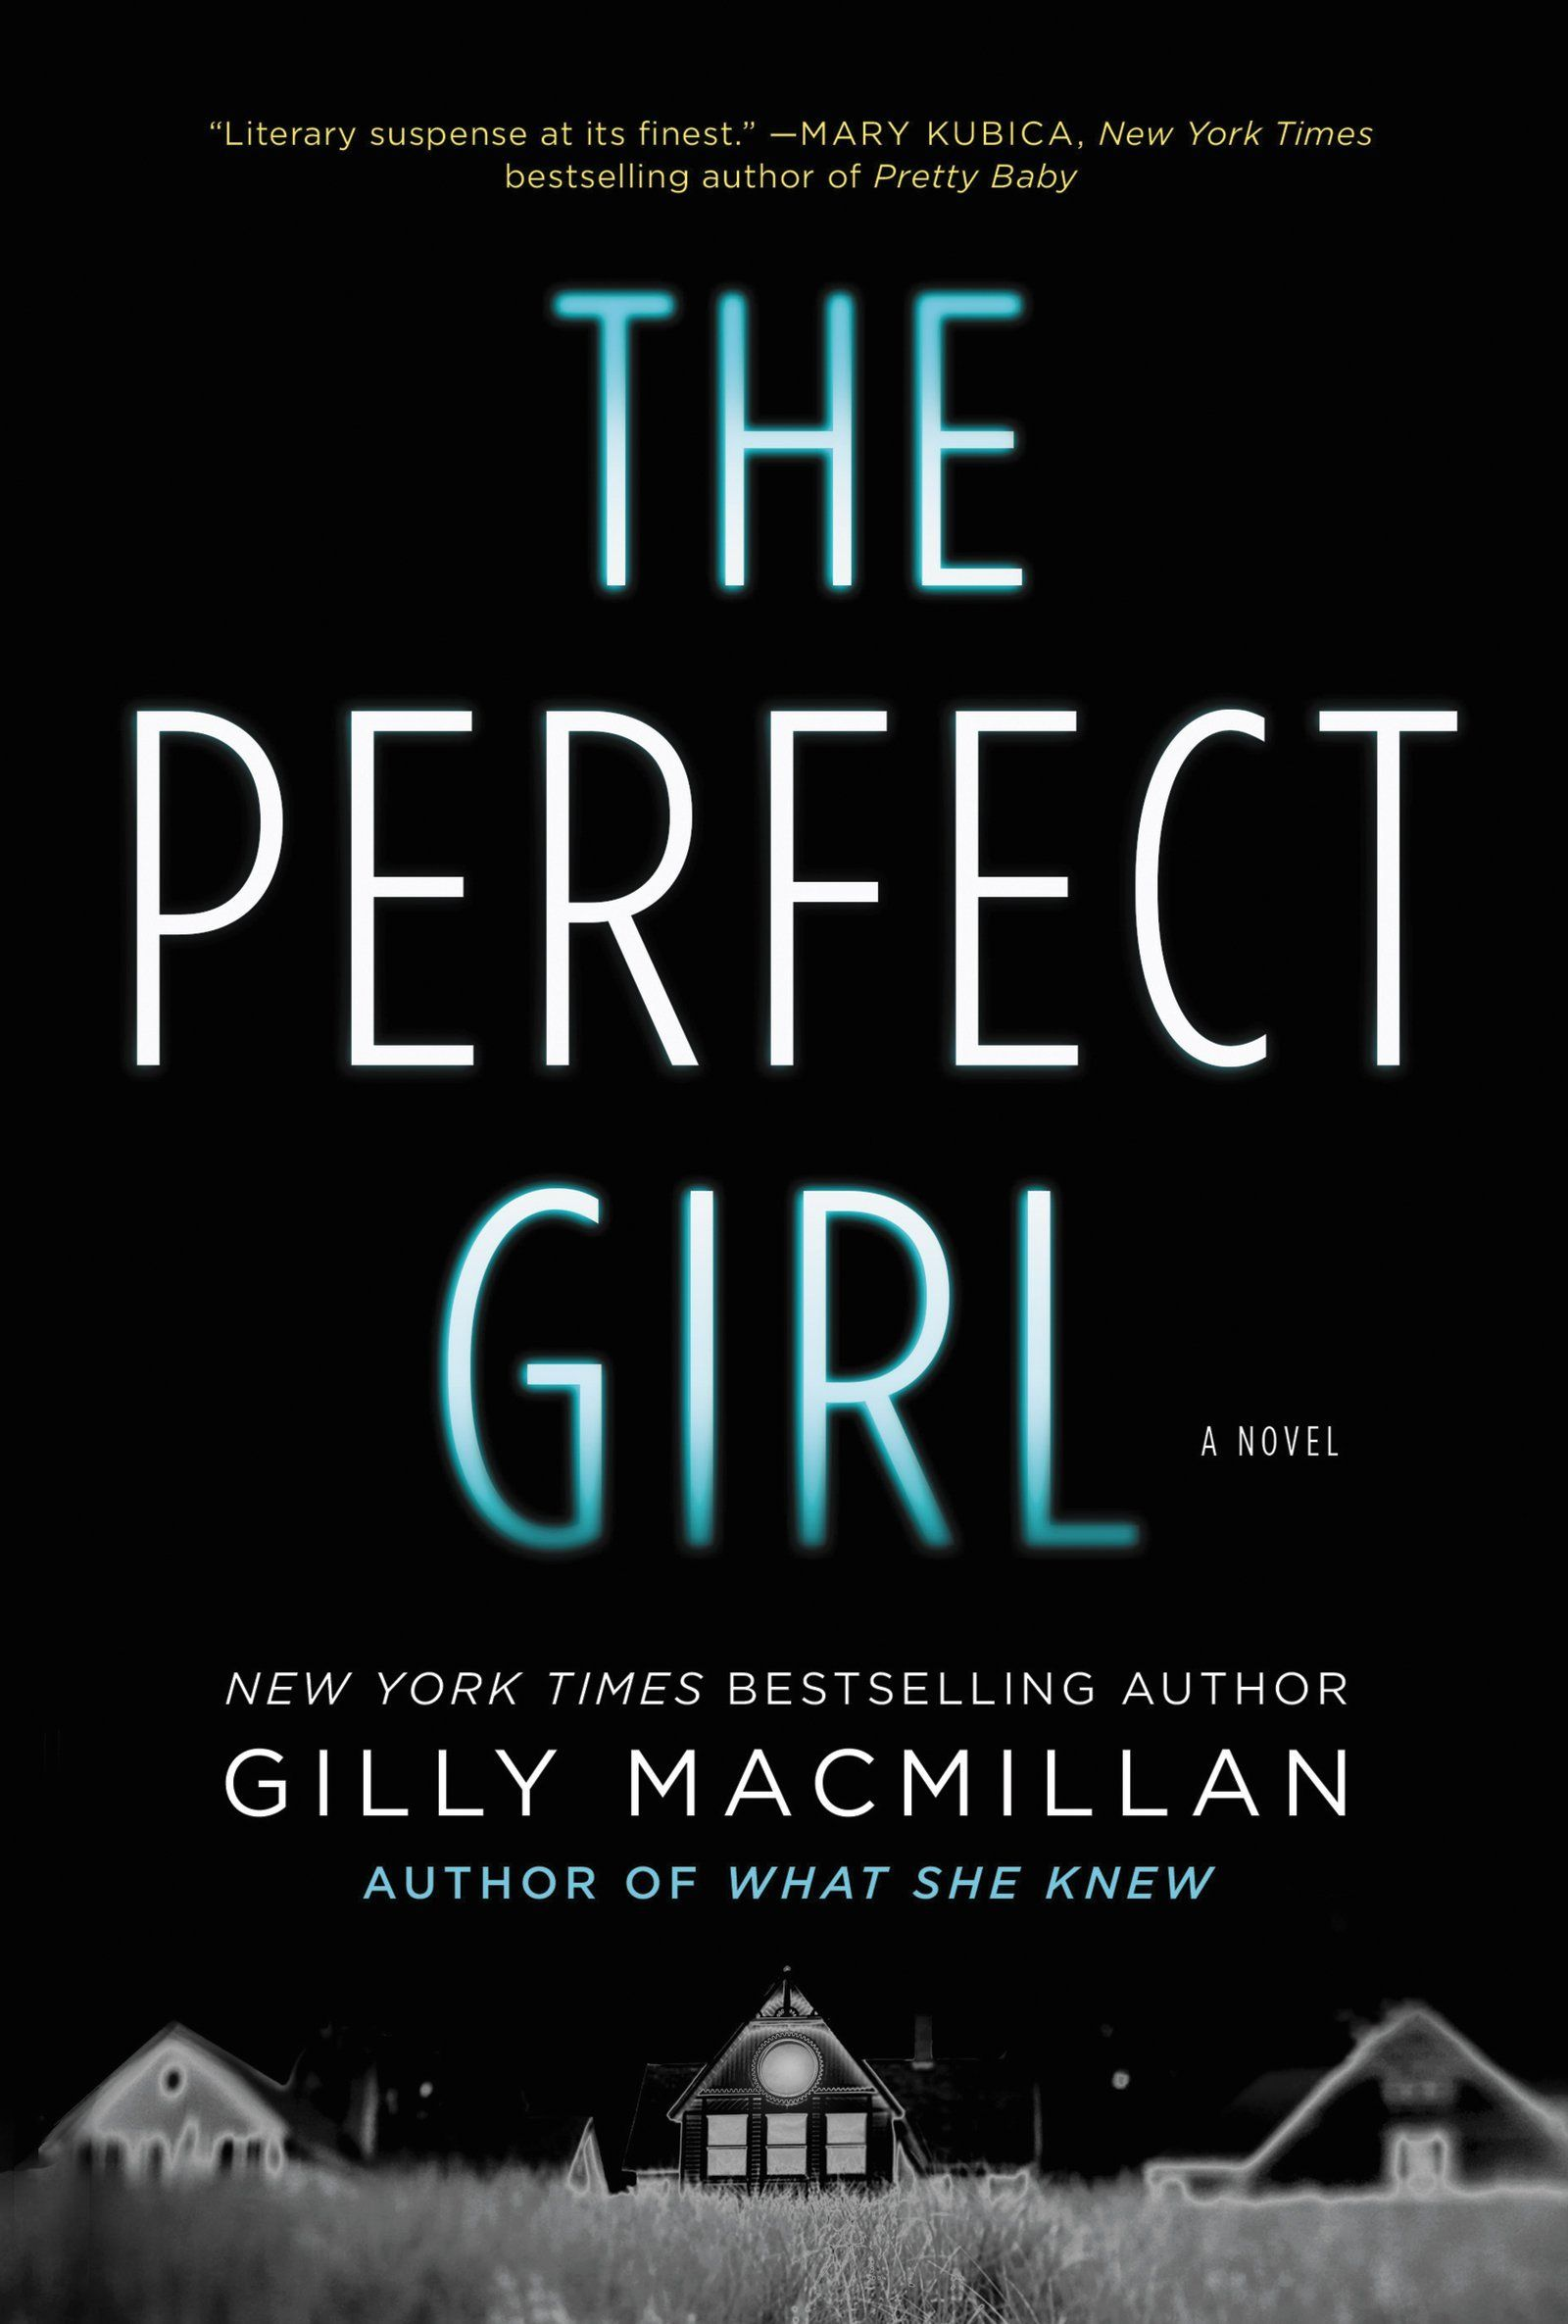 Libros De Macmillan The Perfect Girl A Novel Gilly Macmillan 9780062567482 Amazon